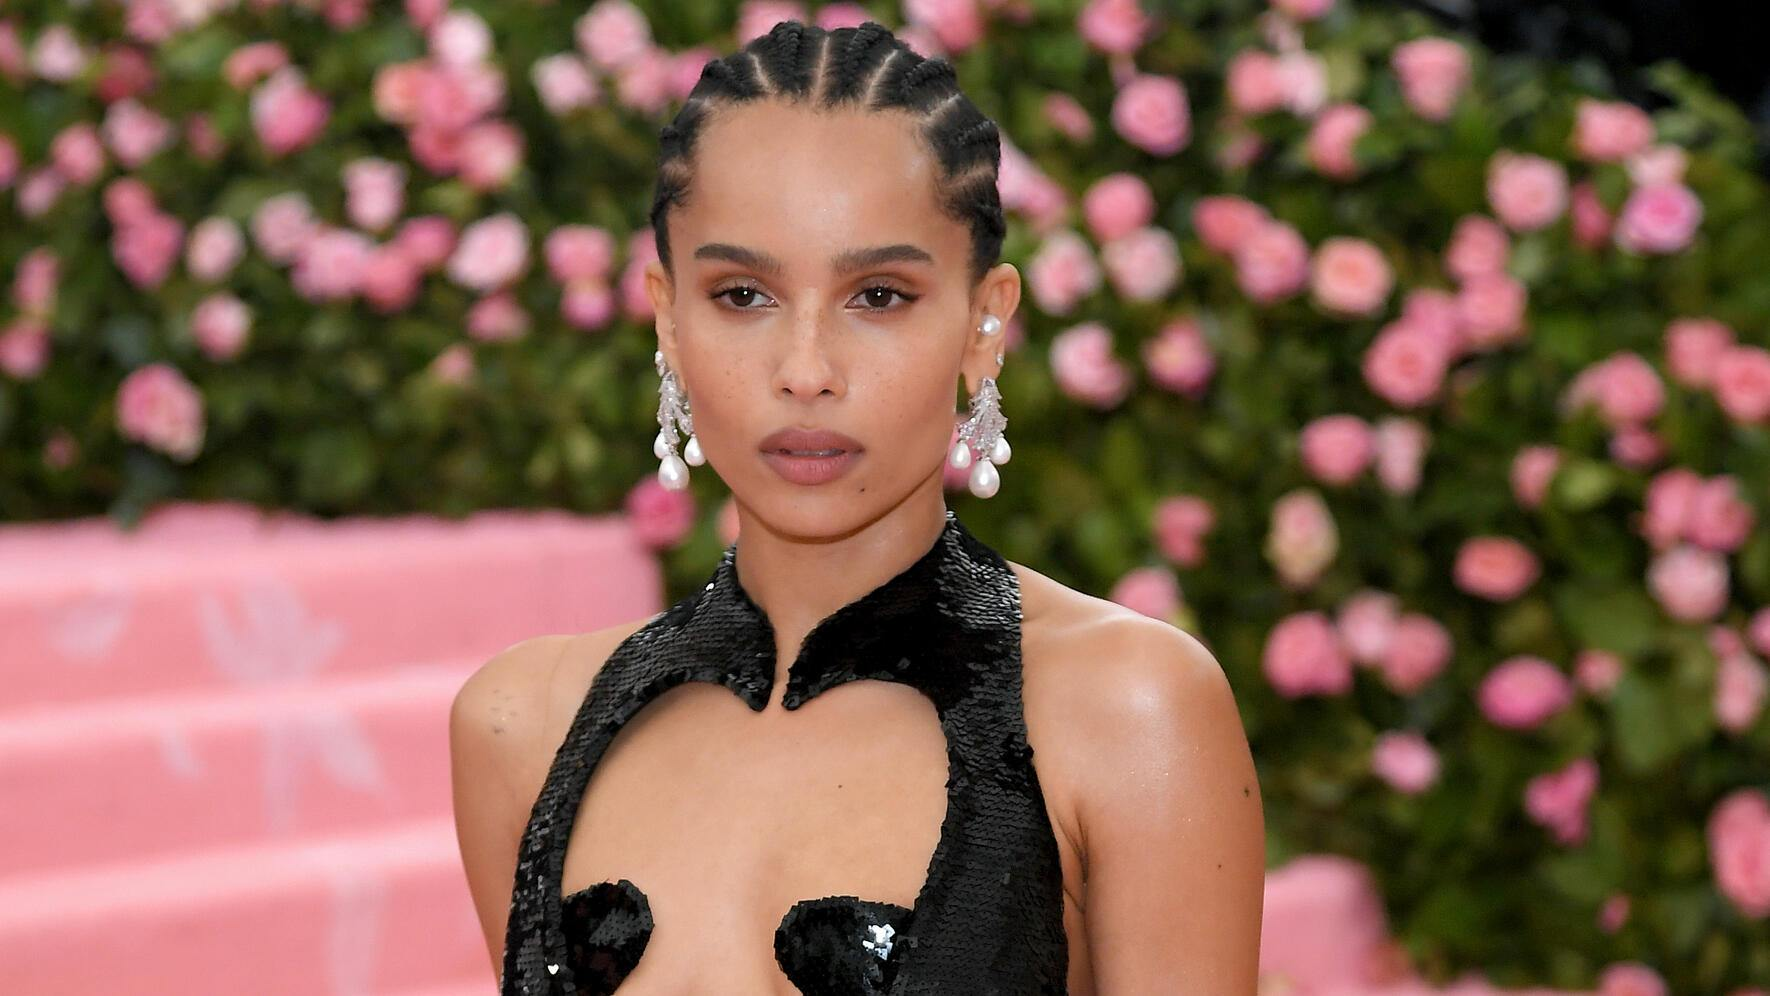 NEW YORK, NEW YORK - MAY 06: Zoe Kravitz attends The 2019 Met Gala Celebrating Camp: Notes on Fashion at Metropolitan Museum of Art on May 06, 2019 in New York City. (Photo by Neilson Barnard/Getty Images)